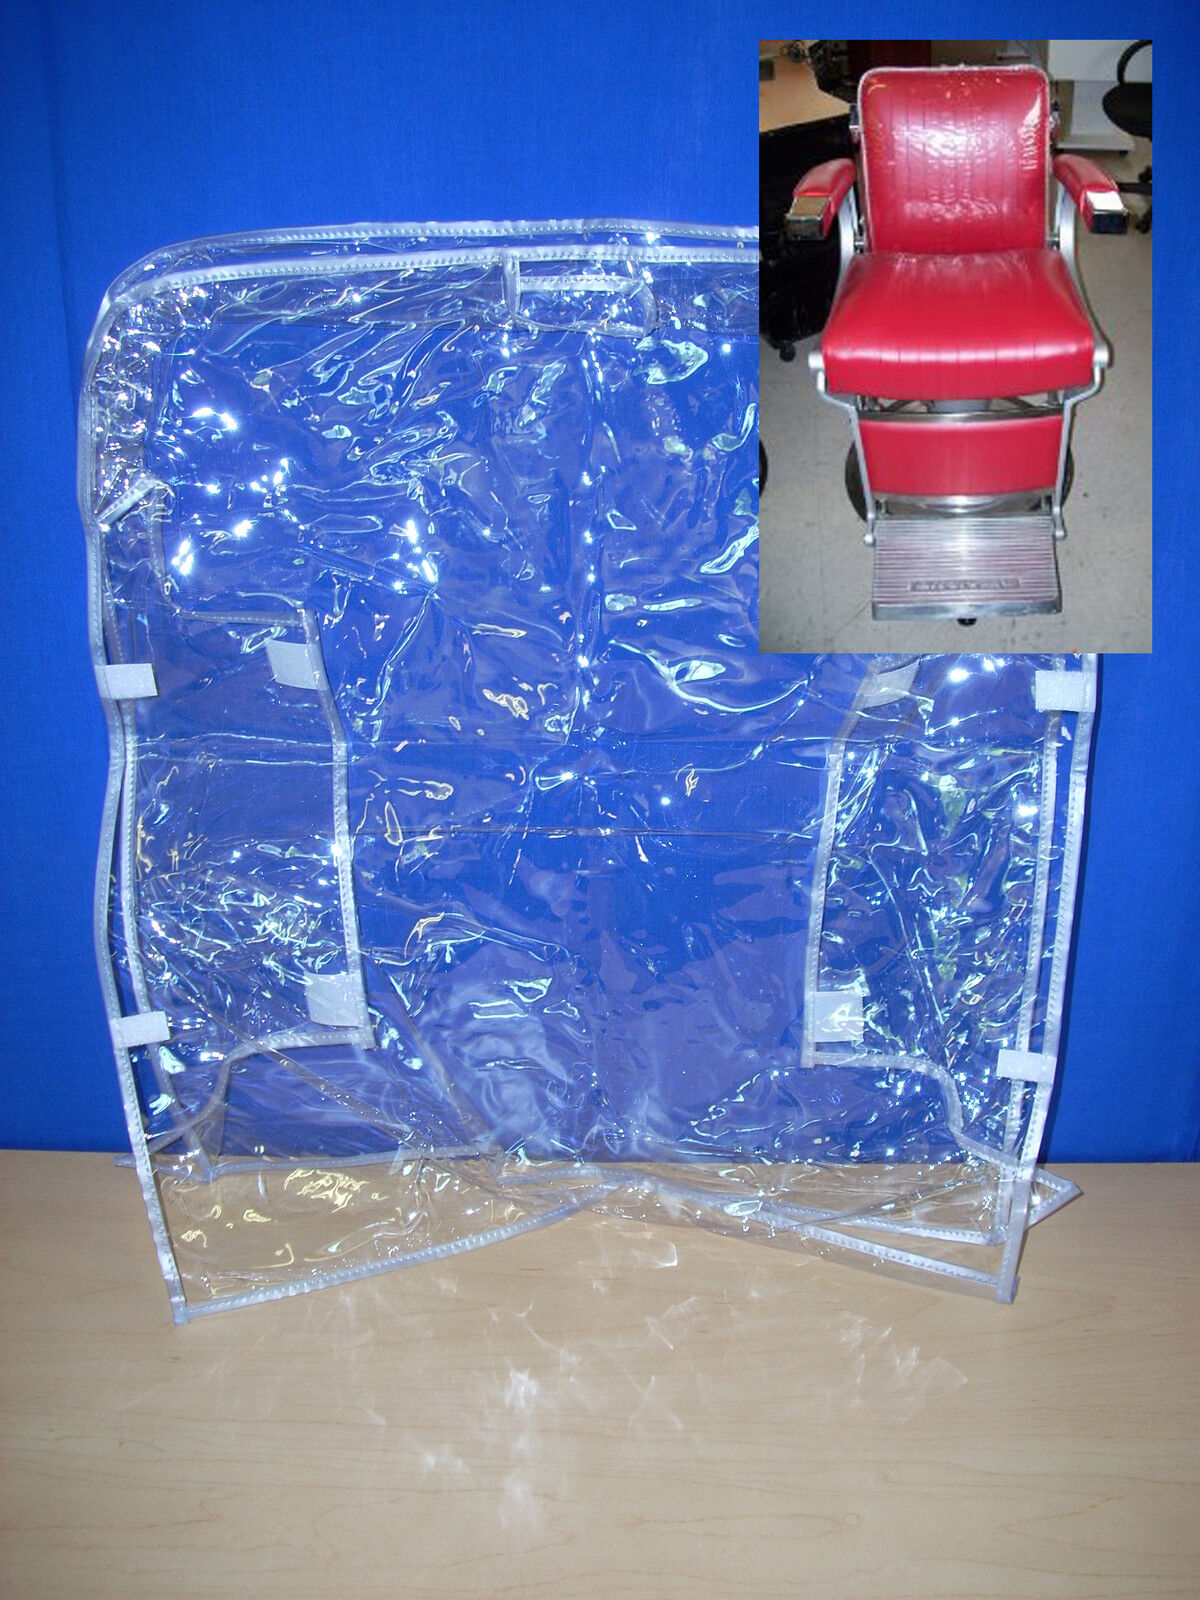 belmont bb225 barber custom chair plastic chair back cover clear